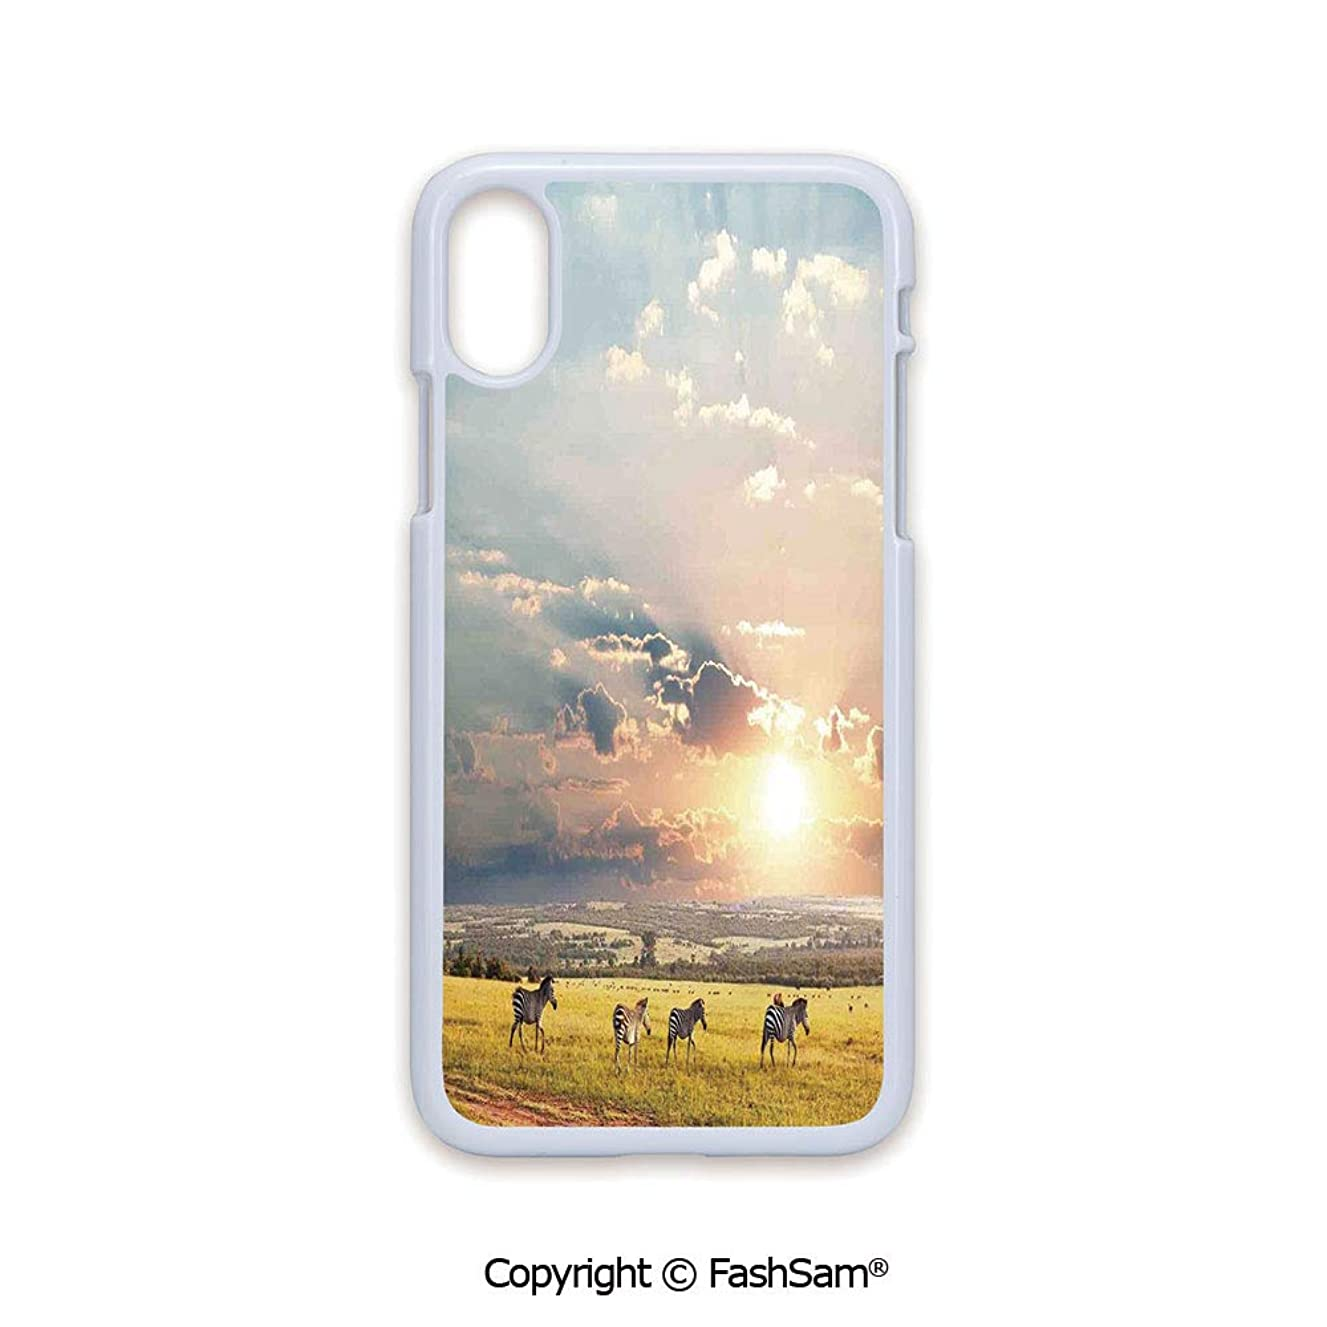 Plastic Rigid Mobile Phone case Compatible with iPhone X Black Edge Zebras Africa Exotic Wildland Natural Distant Forest Morning View Scenic Picture Print 2D Print Hard Plastic Phone Case